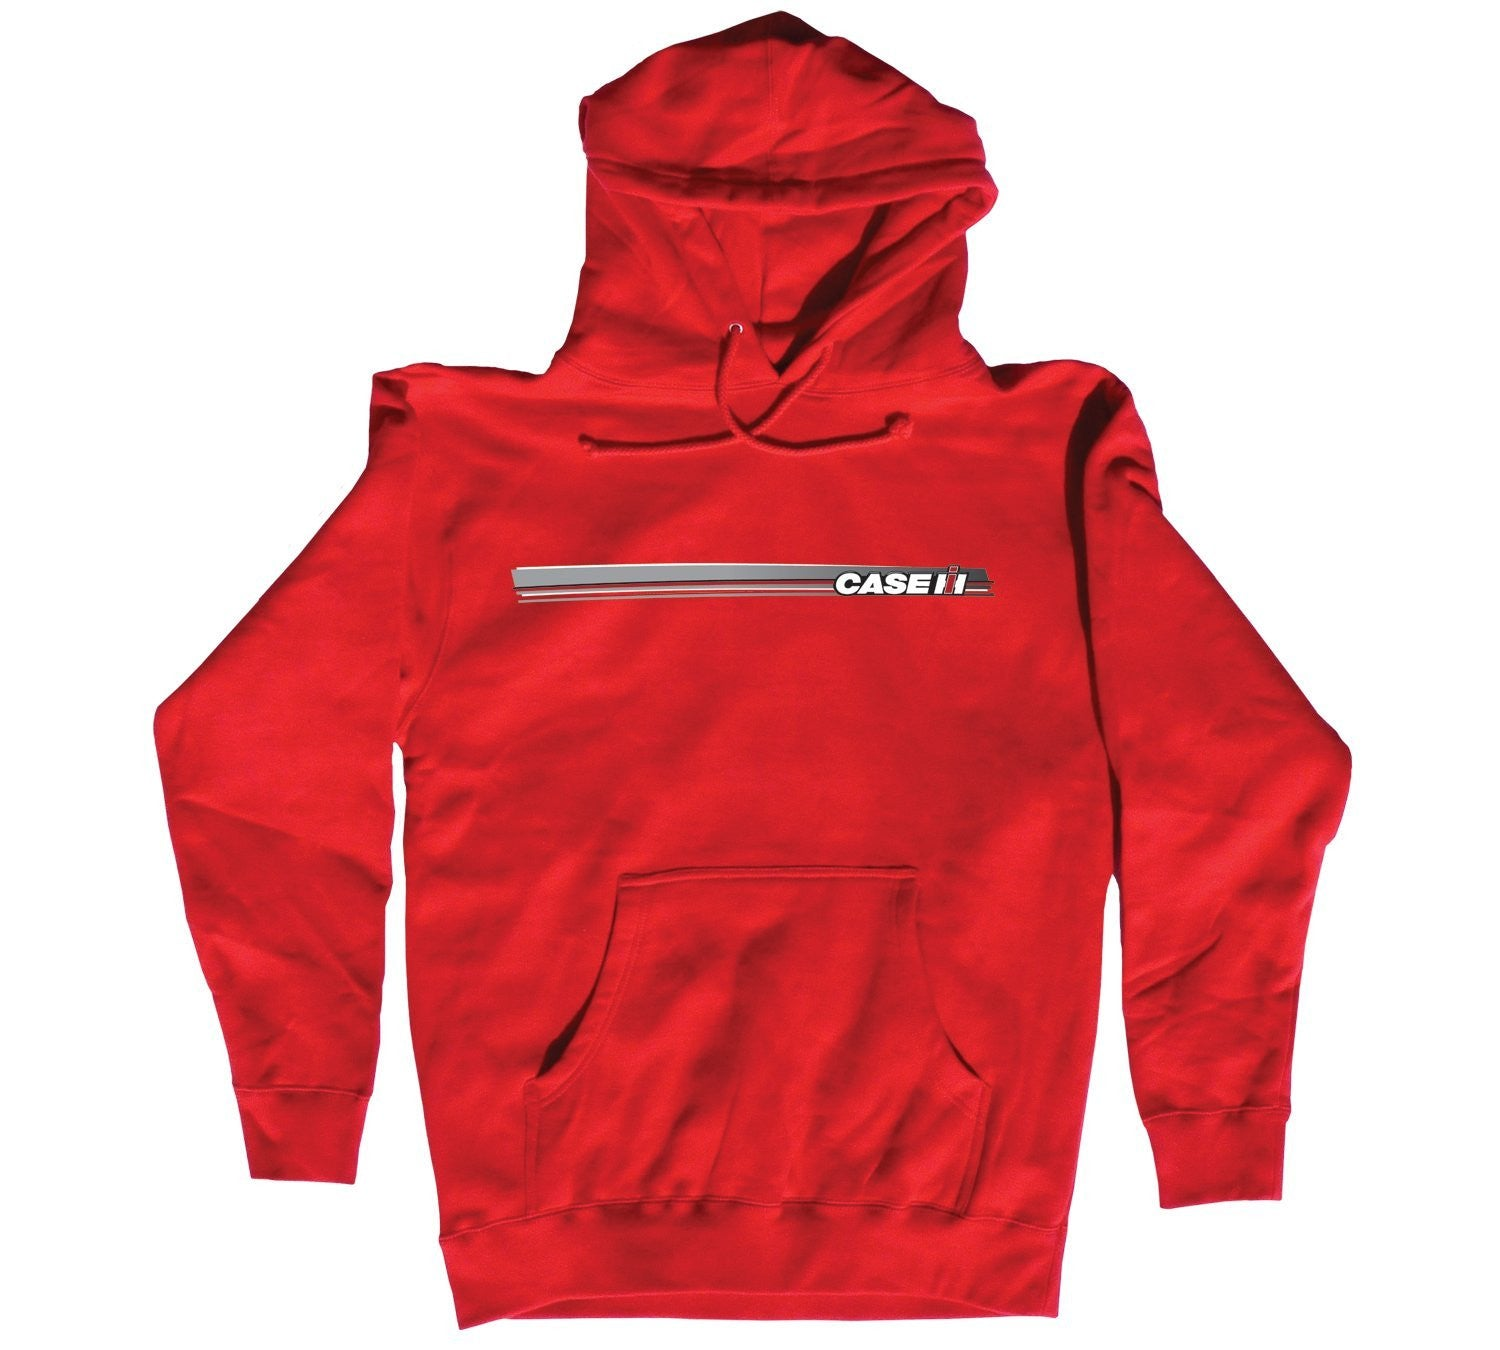 Case IH Farm SWOOSH Hooded Pullover Sweatshirt - Back40Trading2